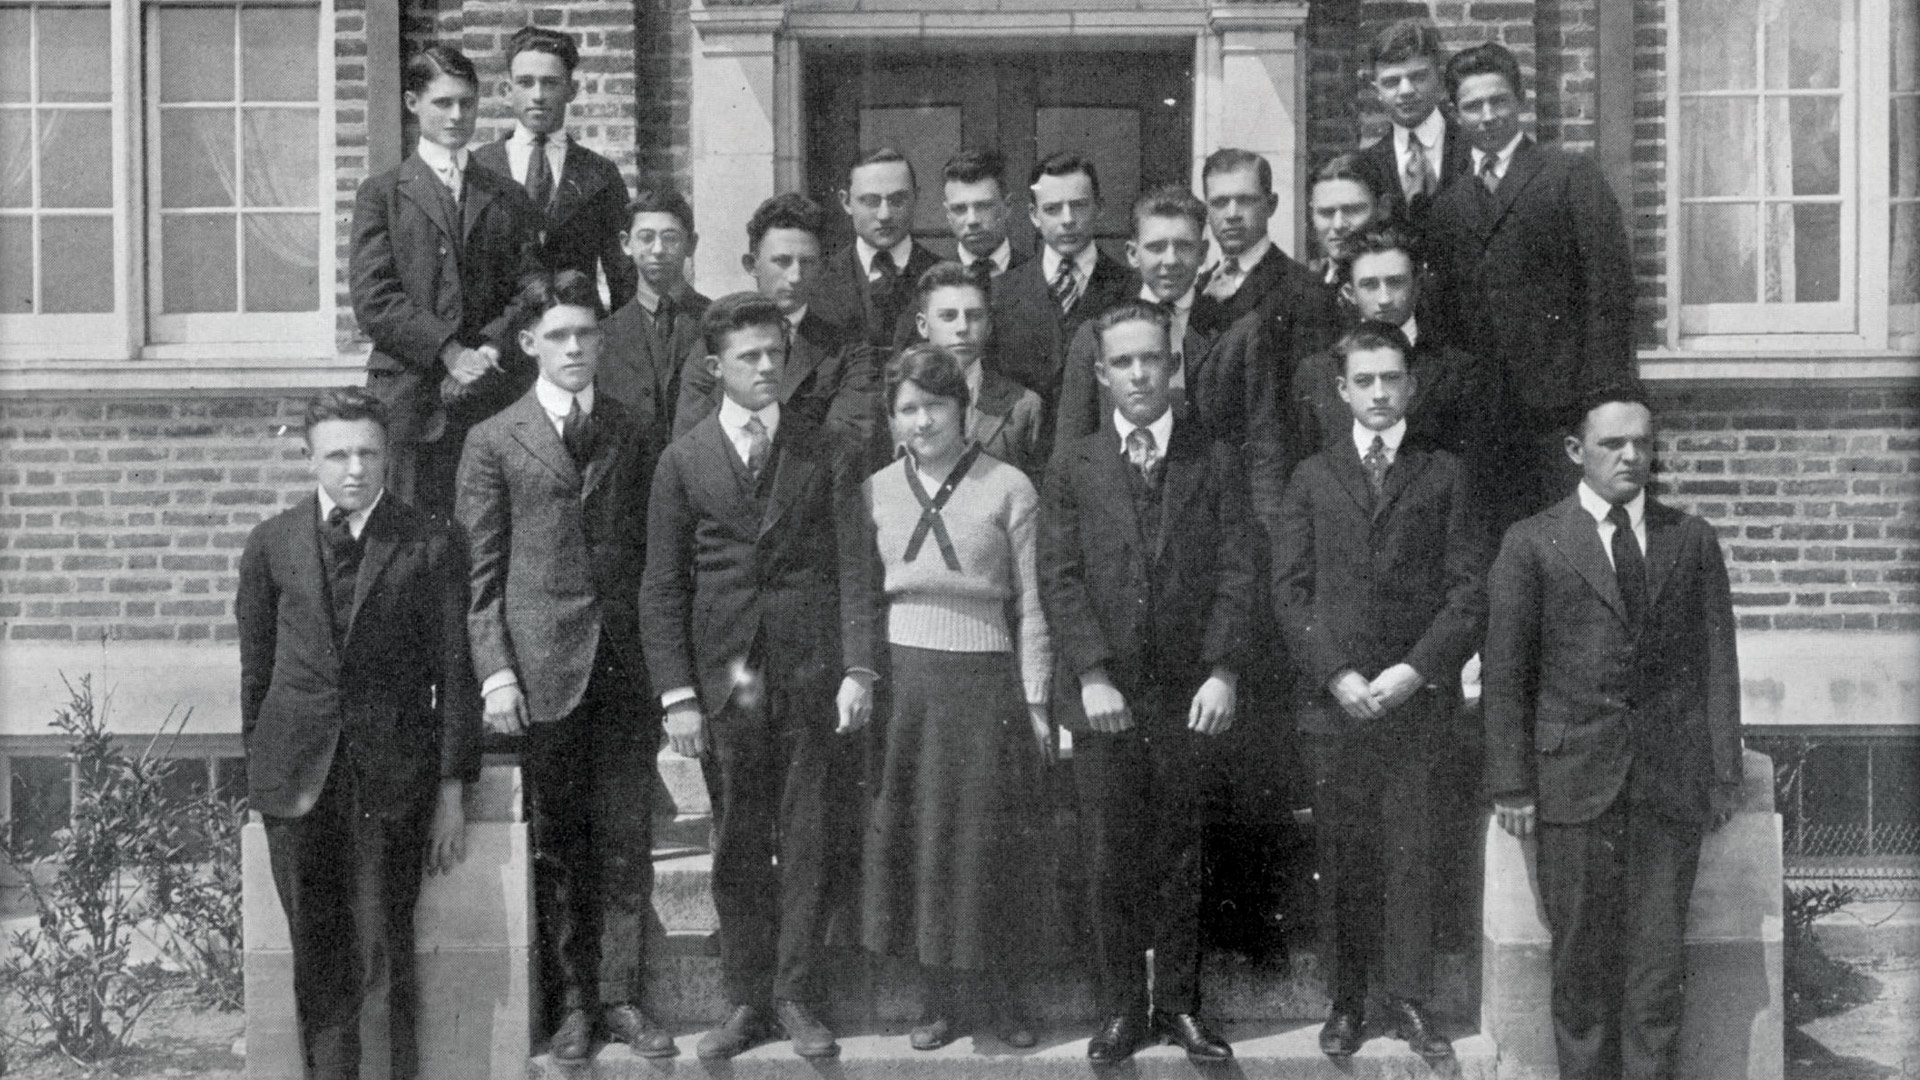 Elizabeth Hook stands out in the class of 1920's sophomore class photo. (Photos courtesy of University Archives)